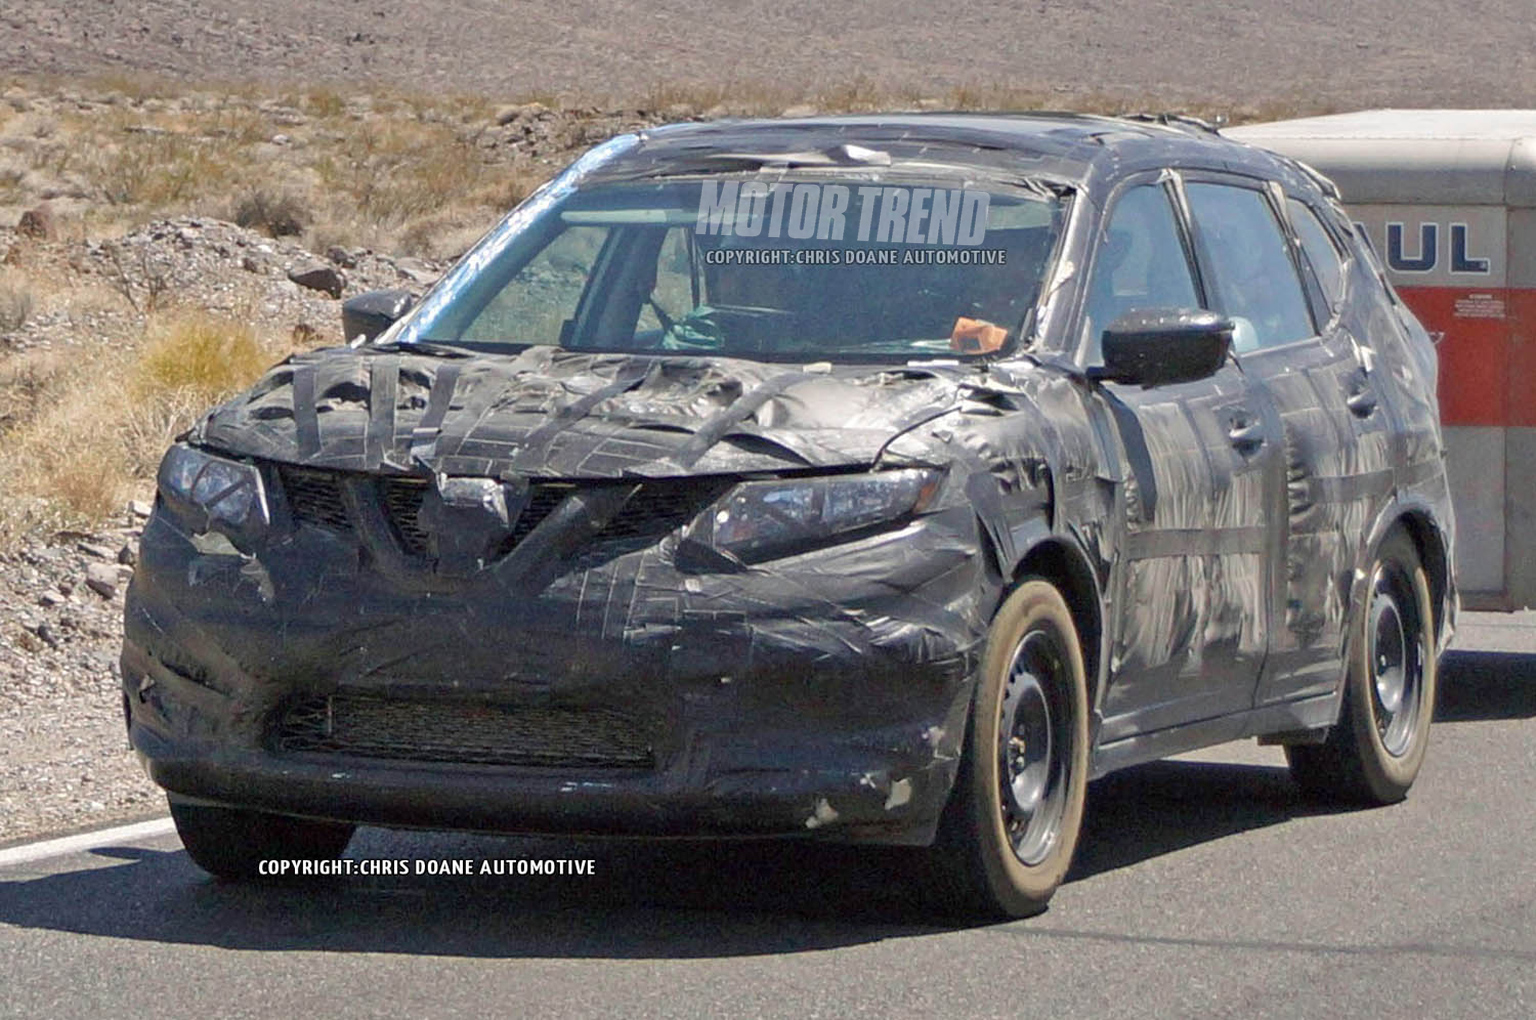 camouflaged 2014 nissan rogue prototype caught towing a trailer rh motortrend com 2001 Nissan Flatbed Tow Truck Nissan Transporter